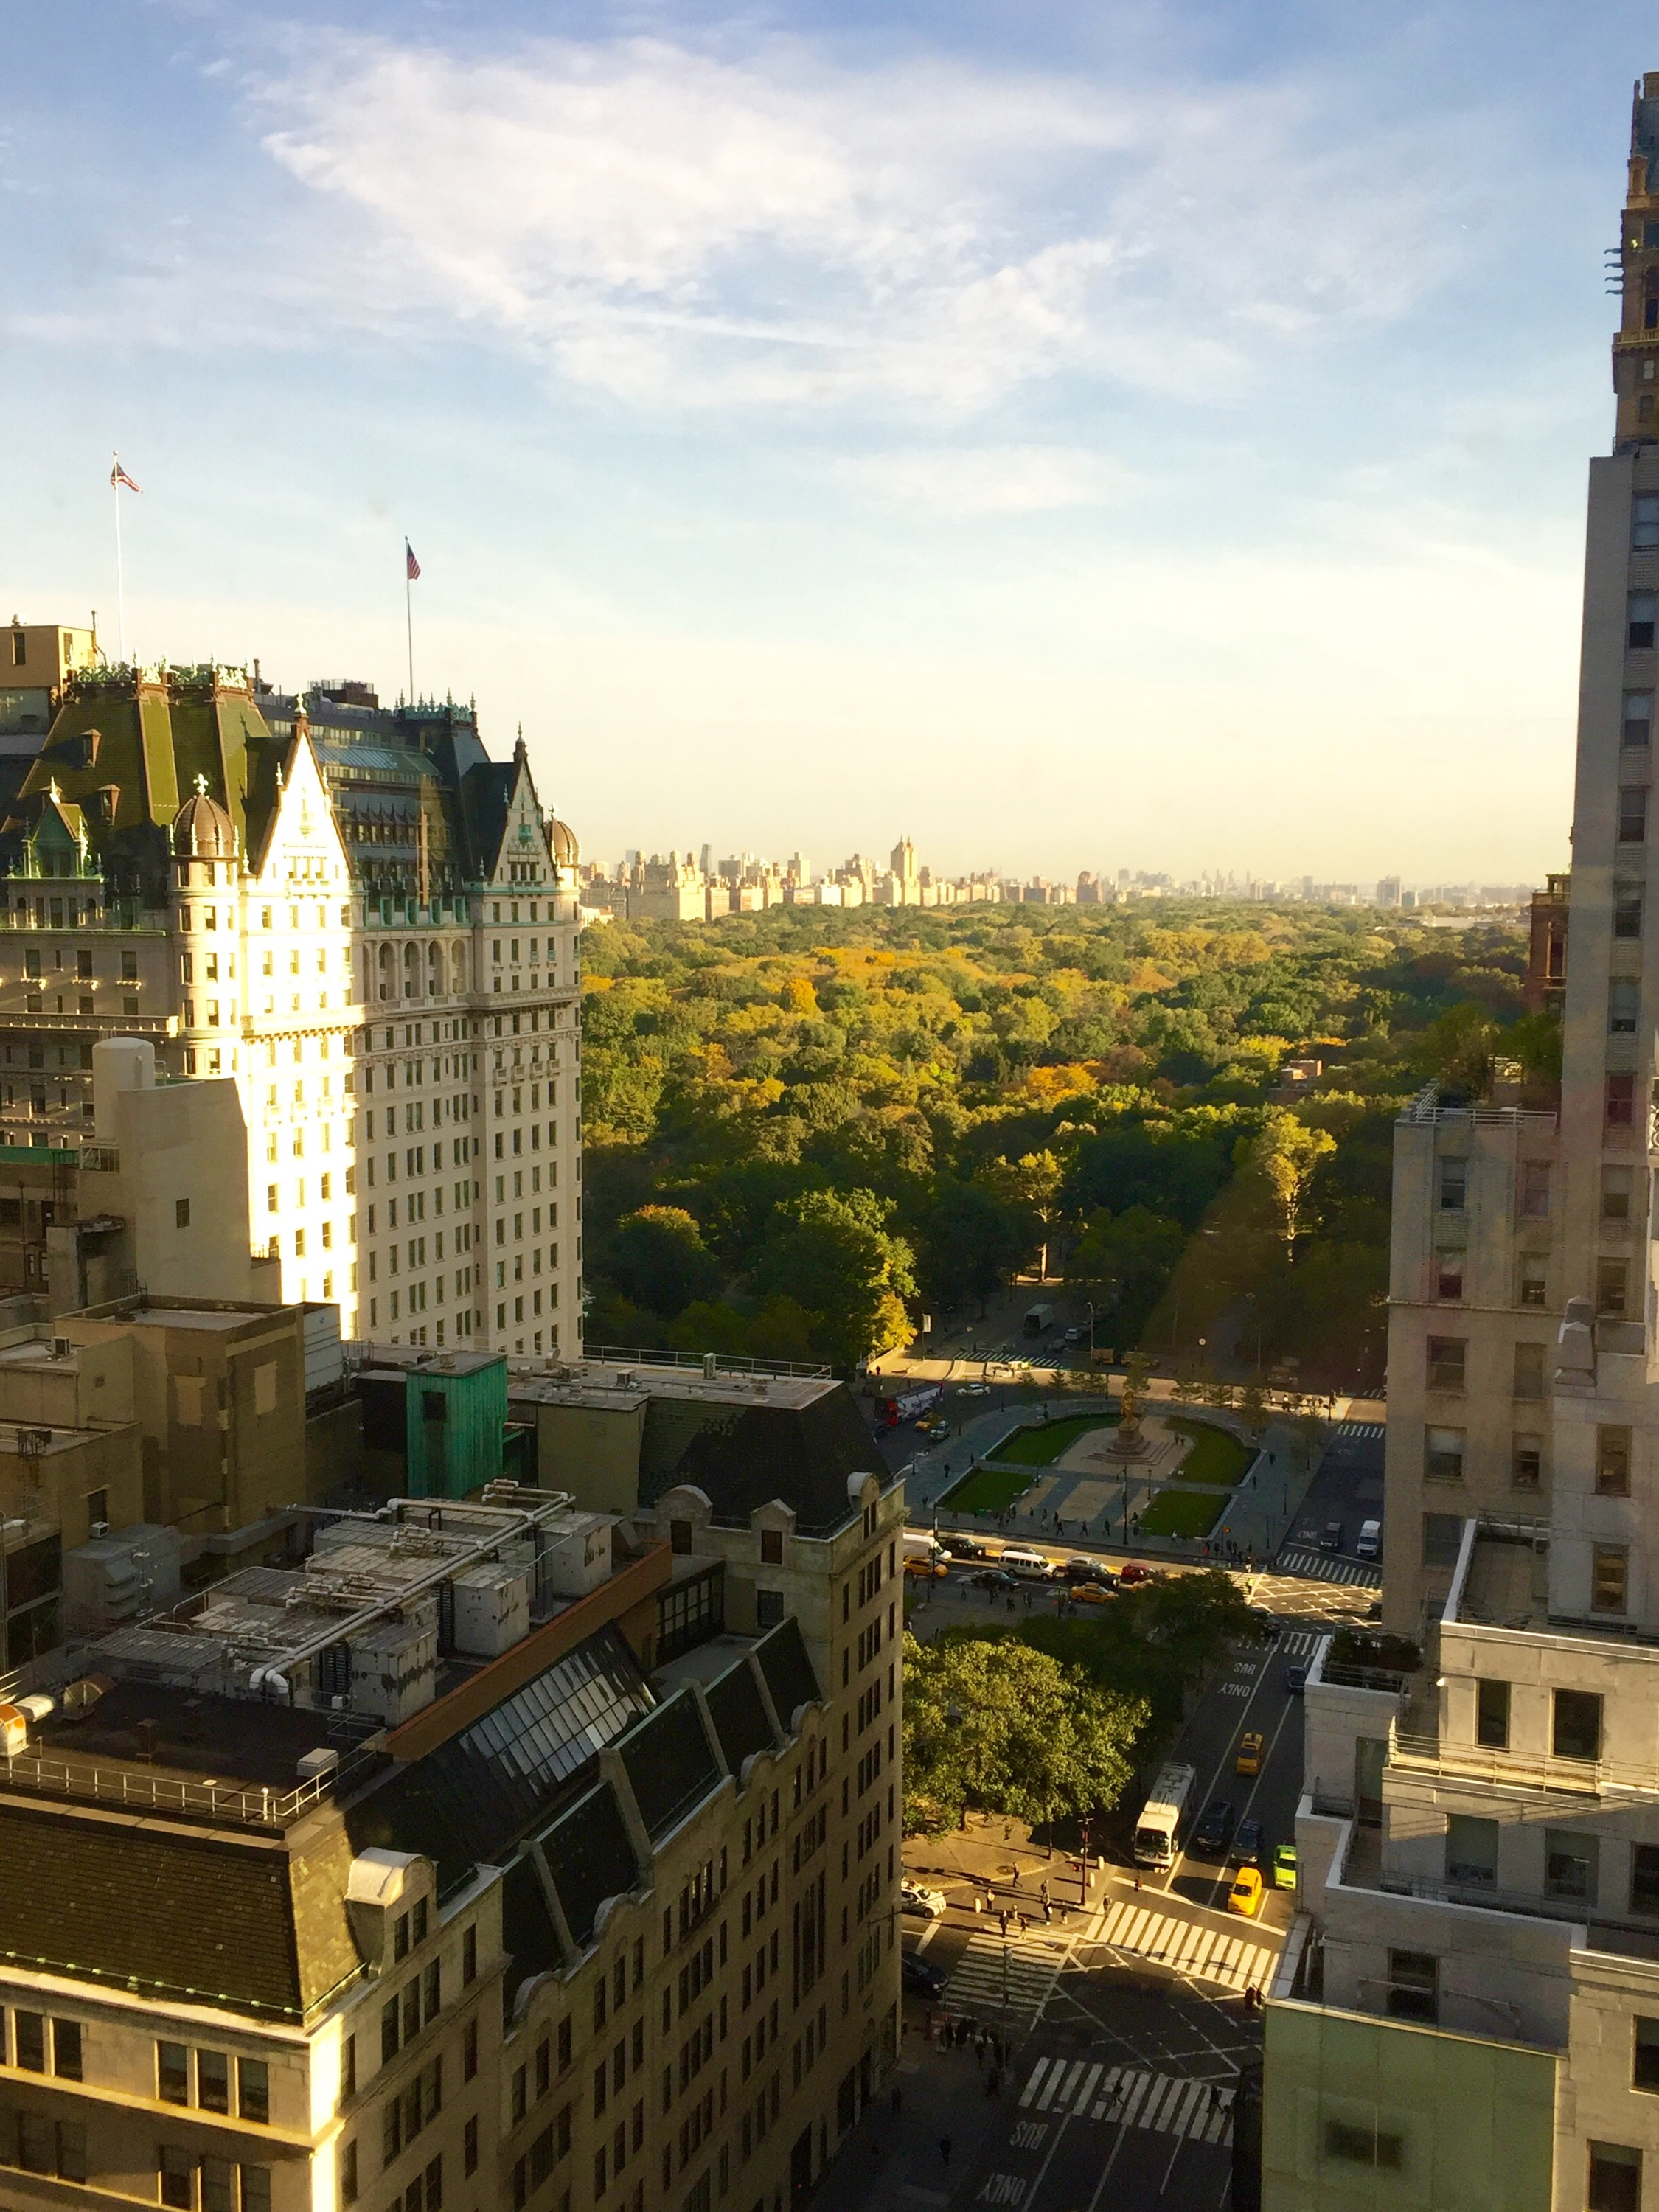 New York Art Director, Jessica Haas captures an aerial view of Central Park and The Plaza